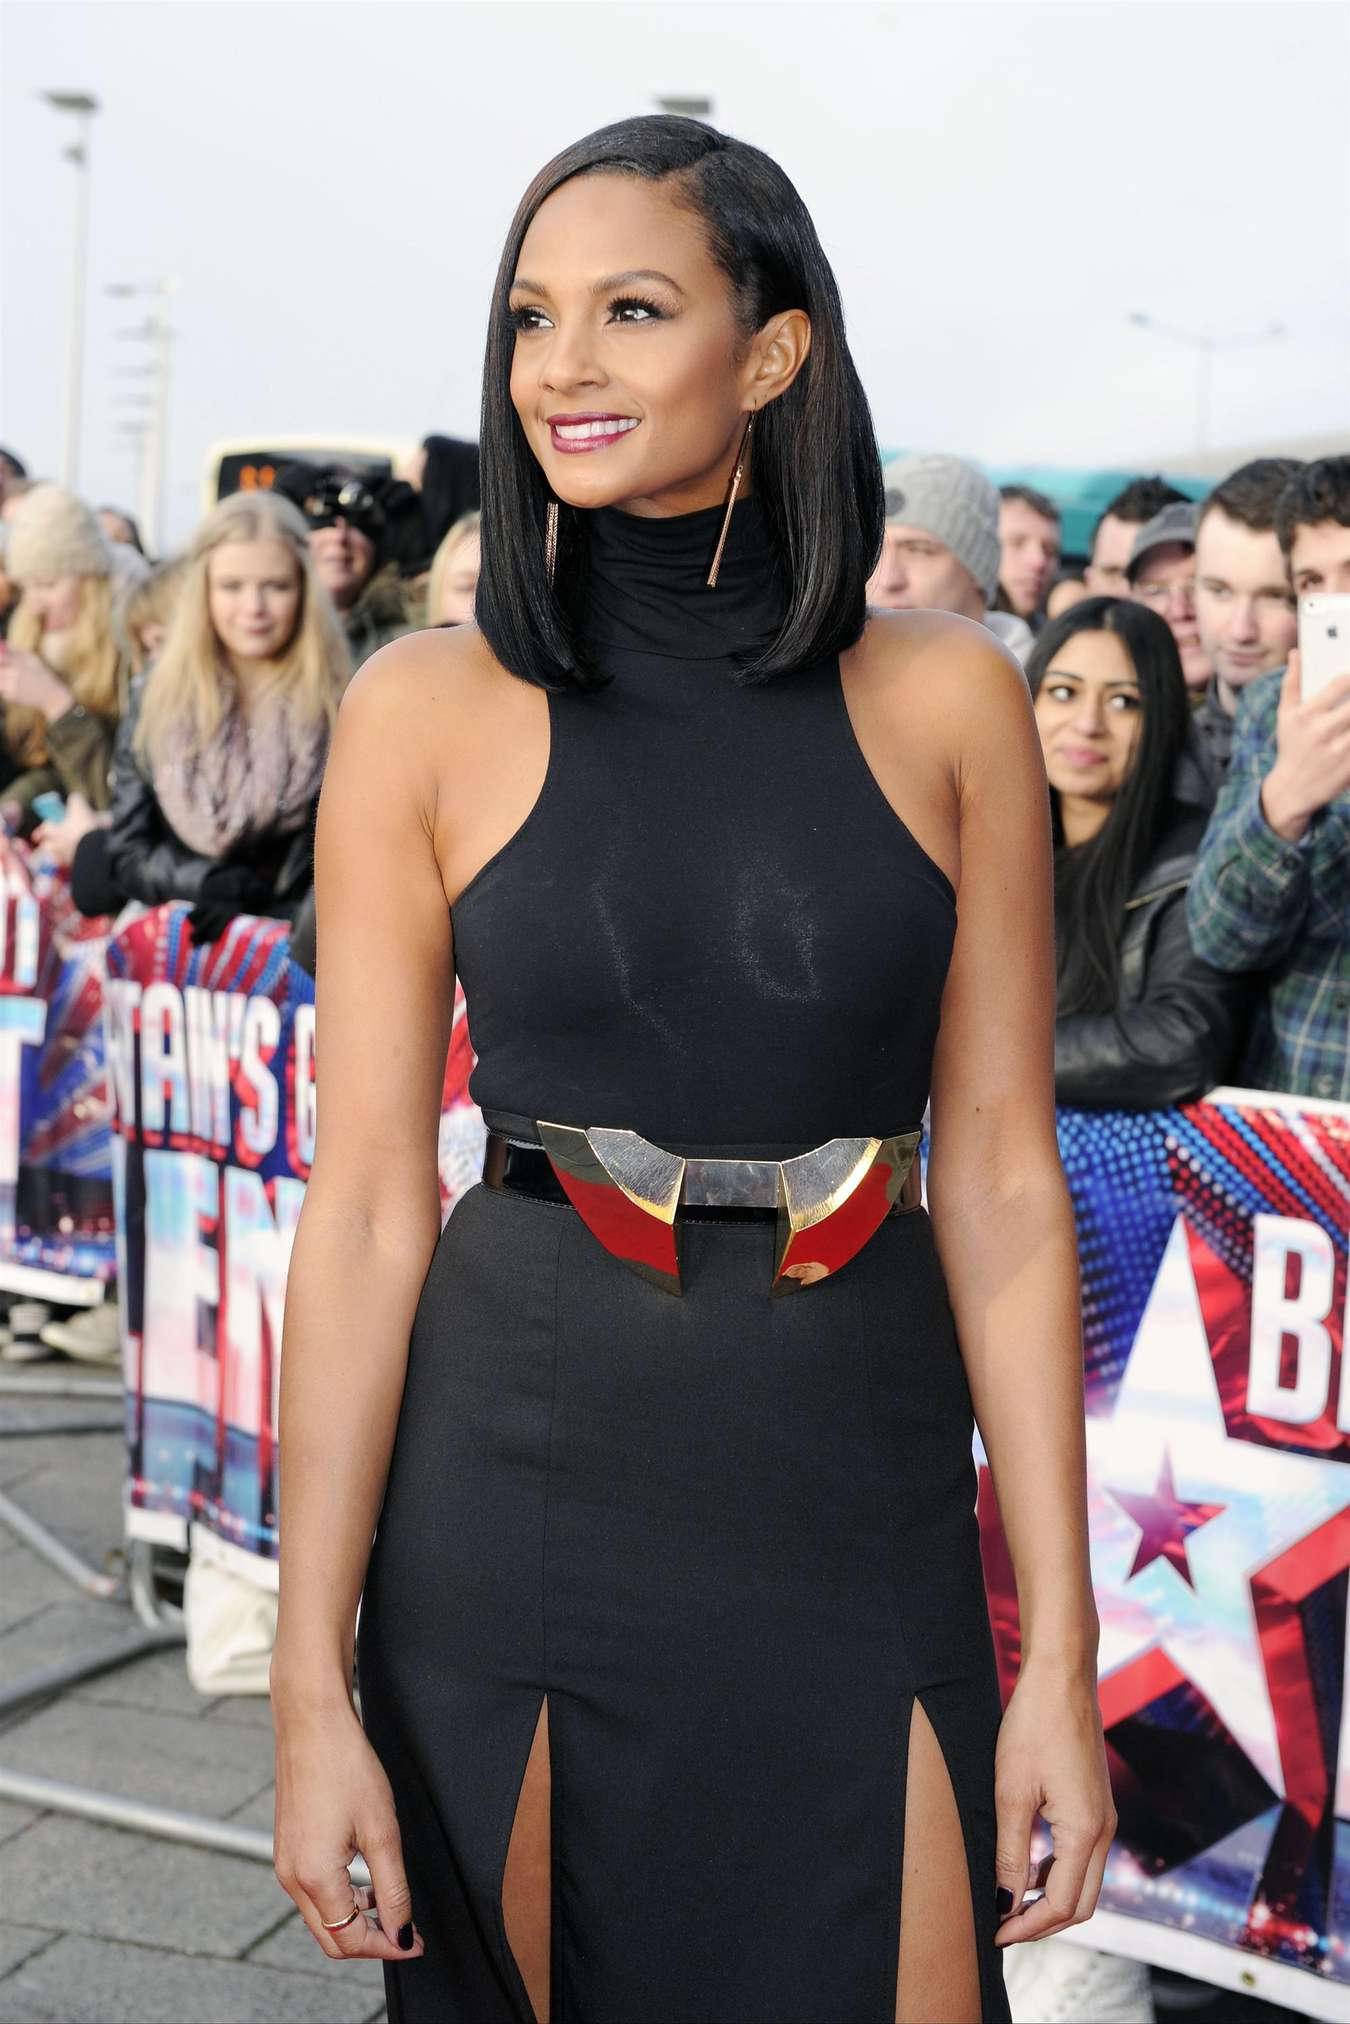 Alesha Dixon Britain's Got Talent